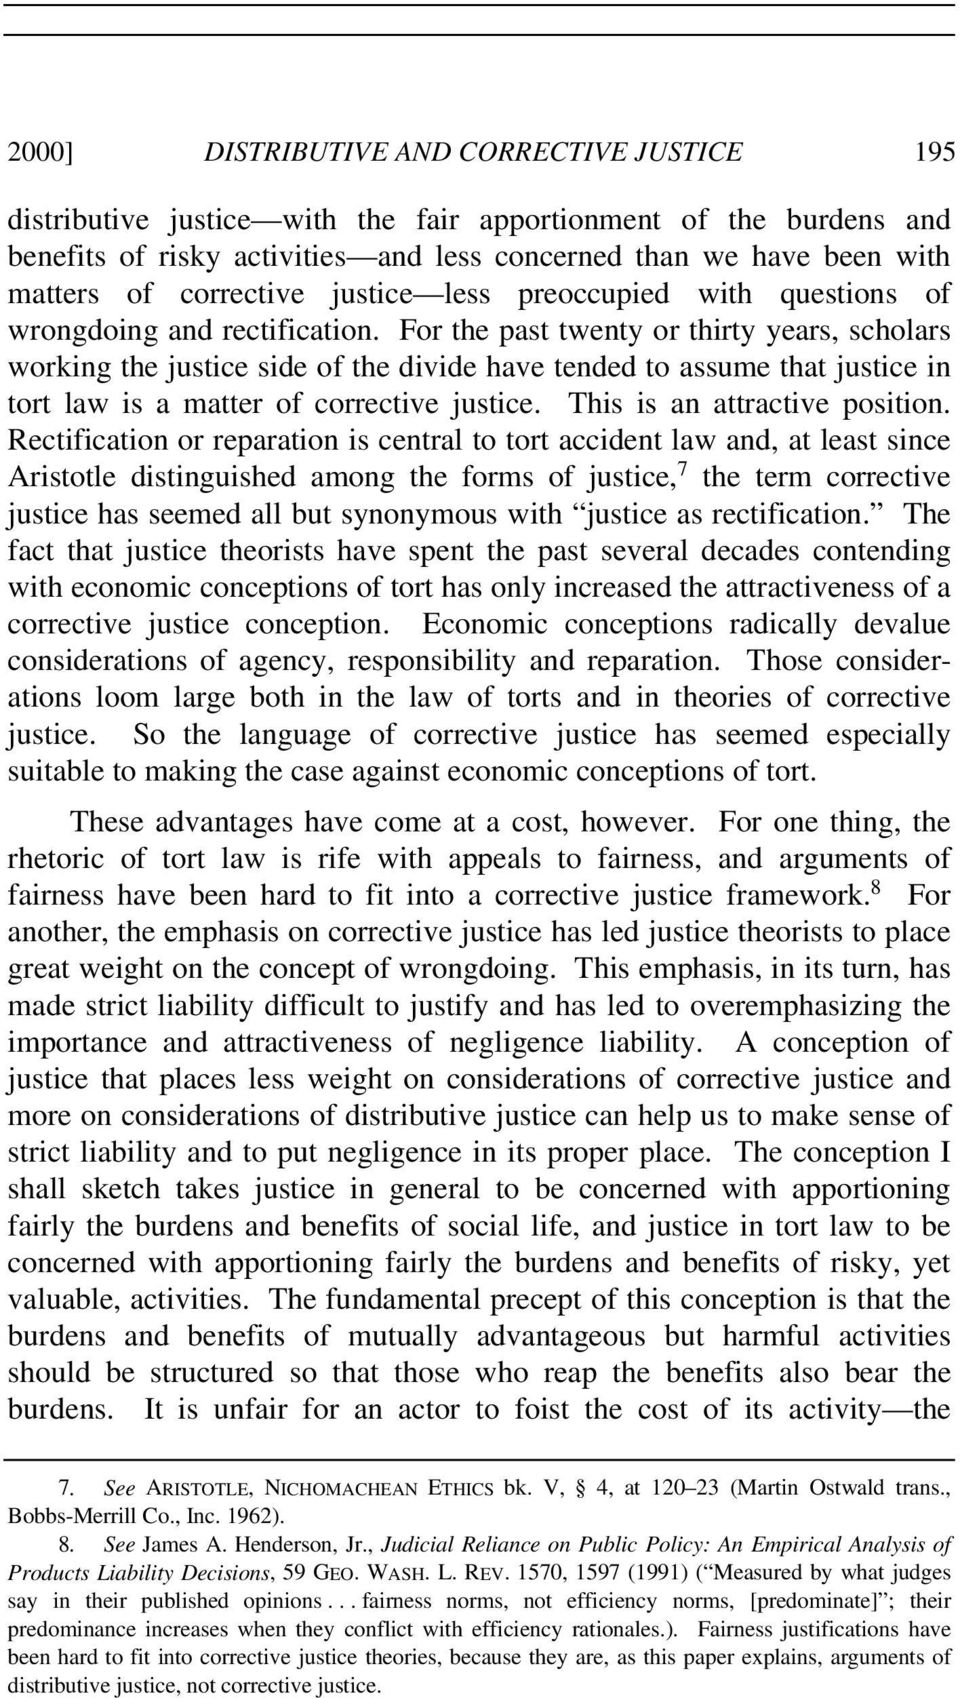 For the past twenty or thirty years, scholars working the justice side of the divide have tended to assume that justice in tort law is a matter of corrective justice. This is an attractive position.